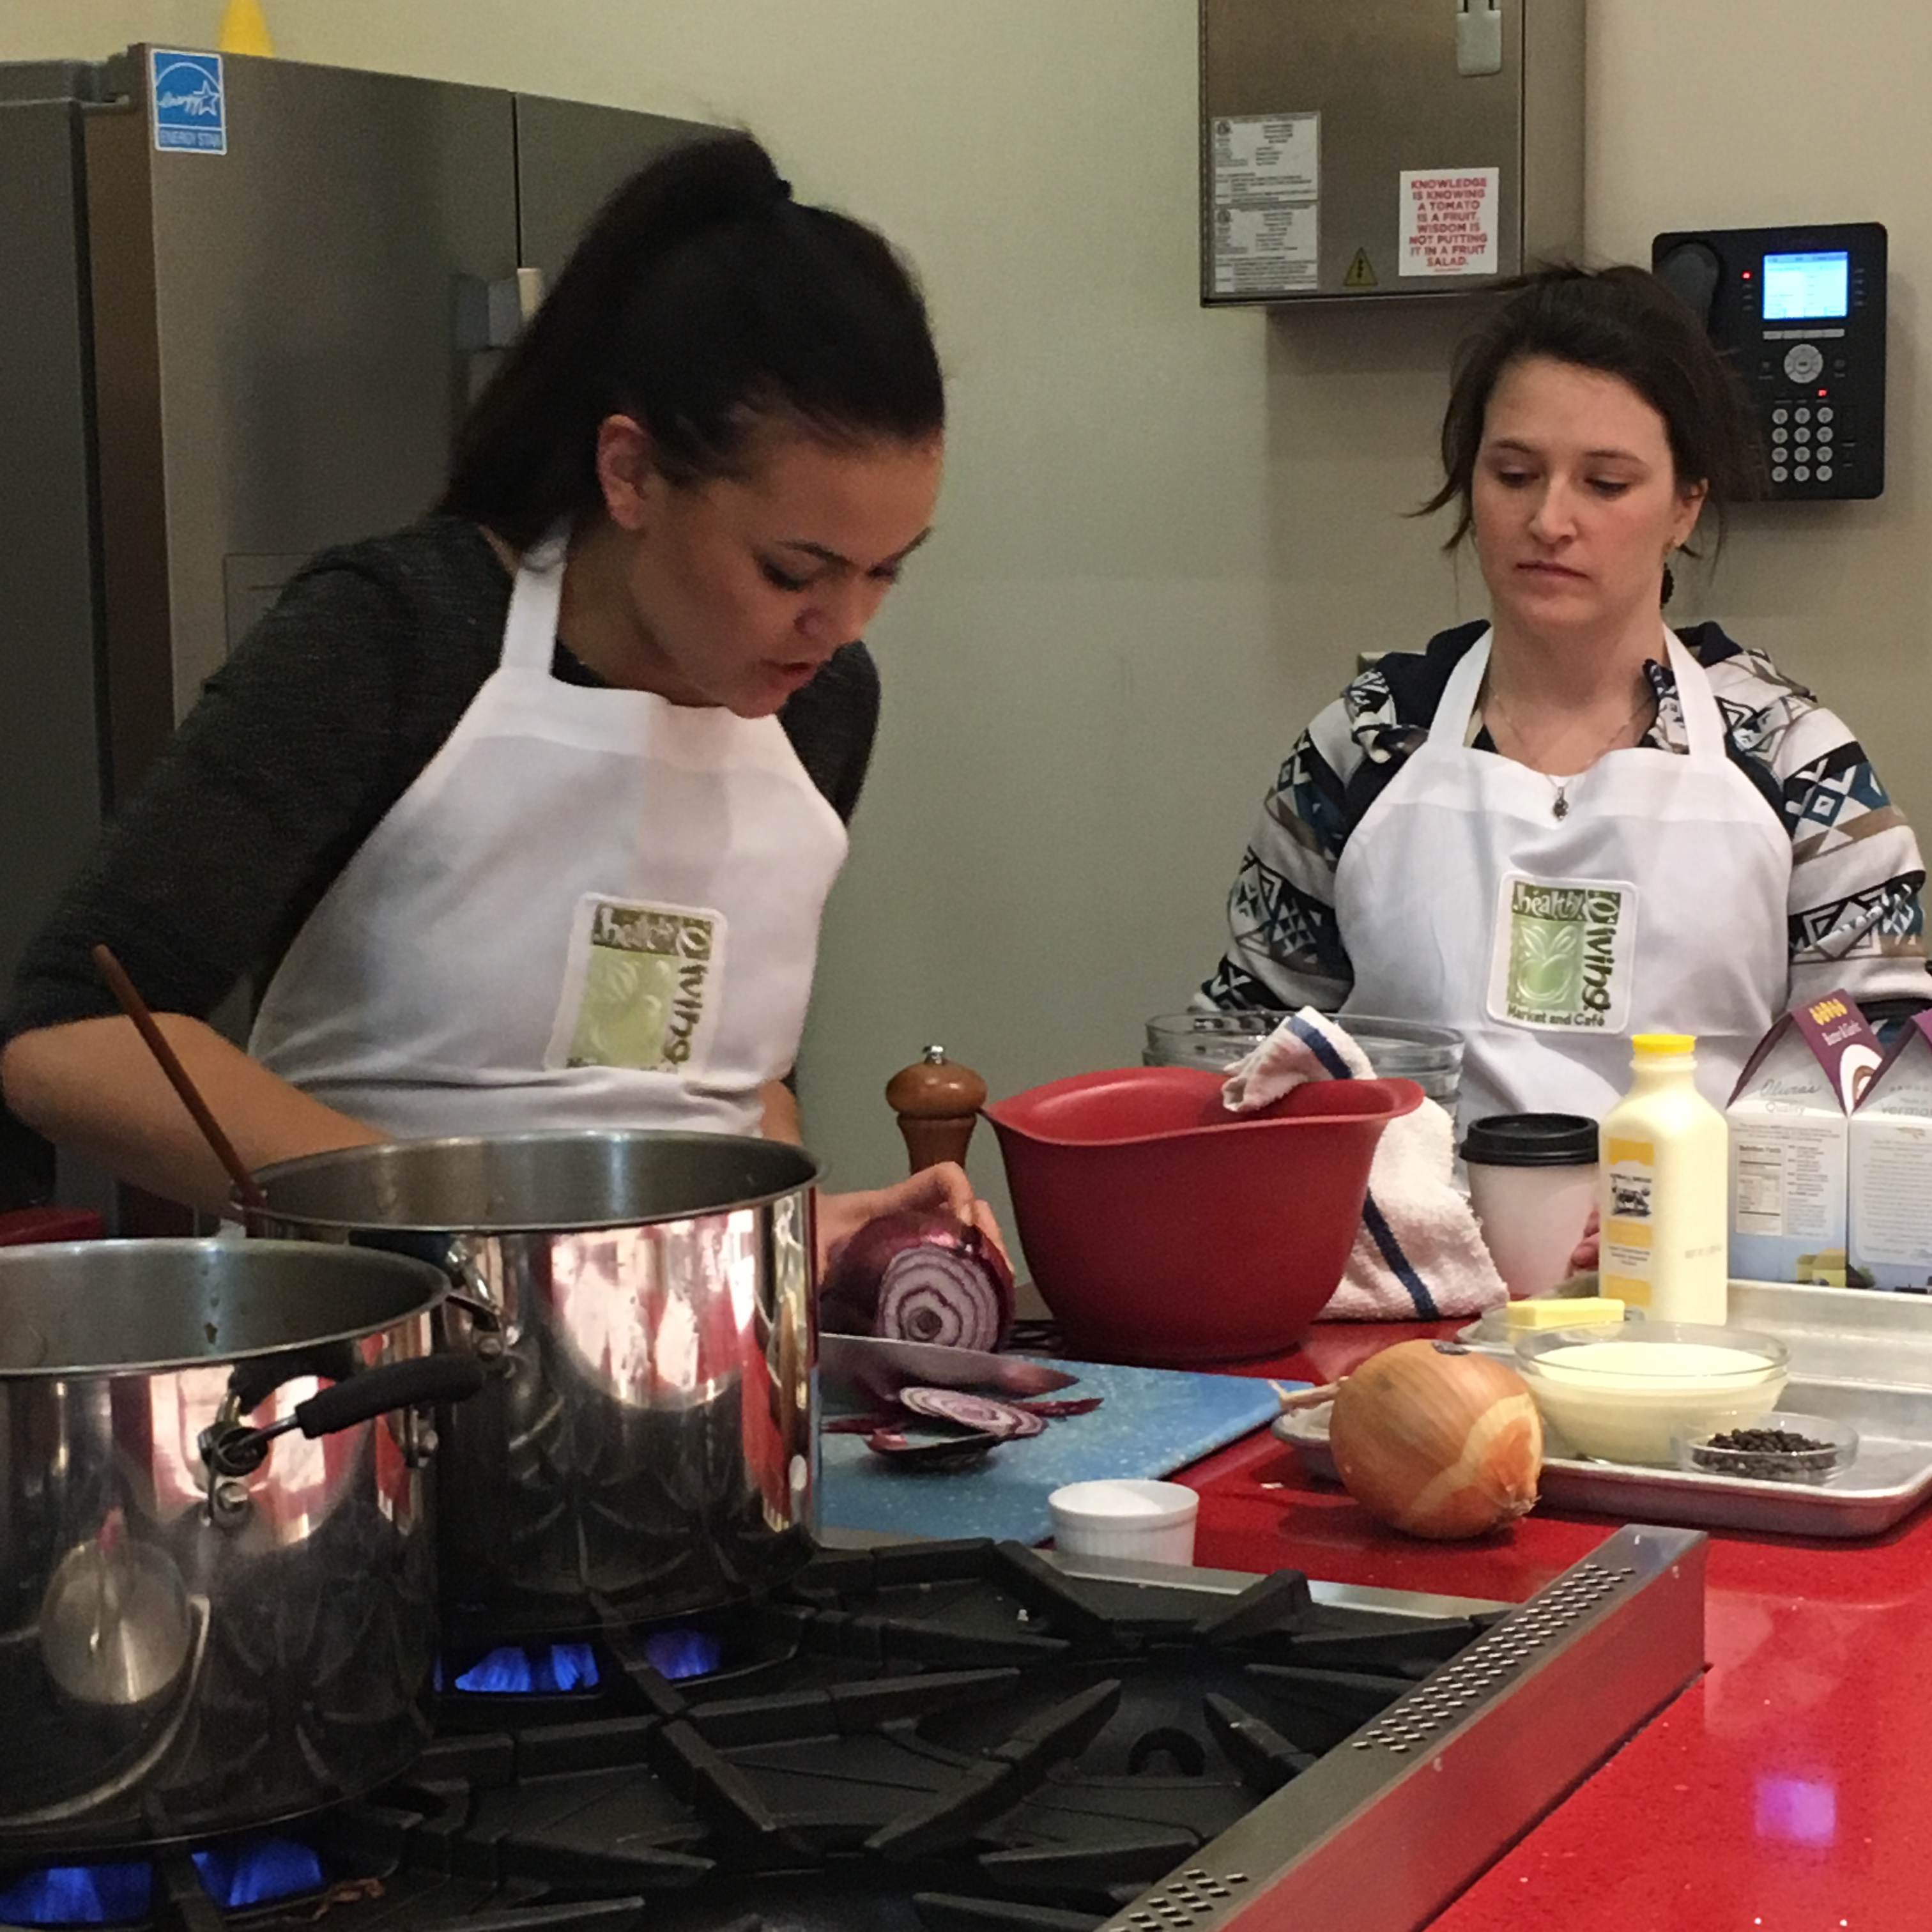 Healthy Living Market & Cafe Cooking Class [PHOTOS]